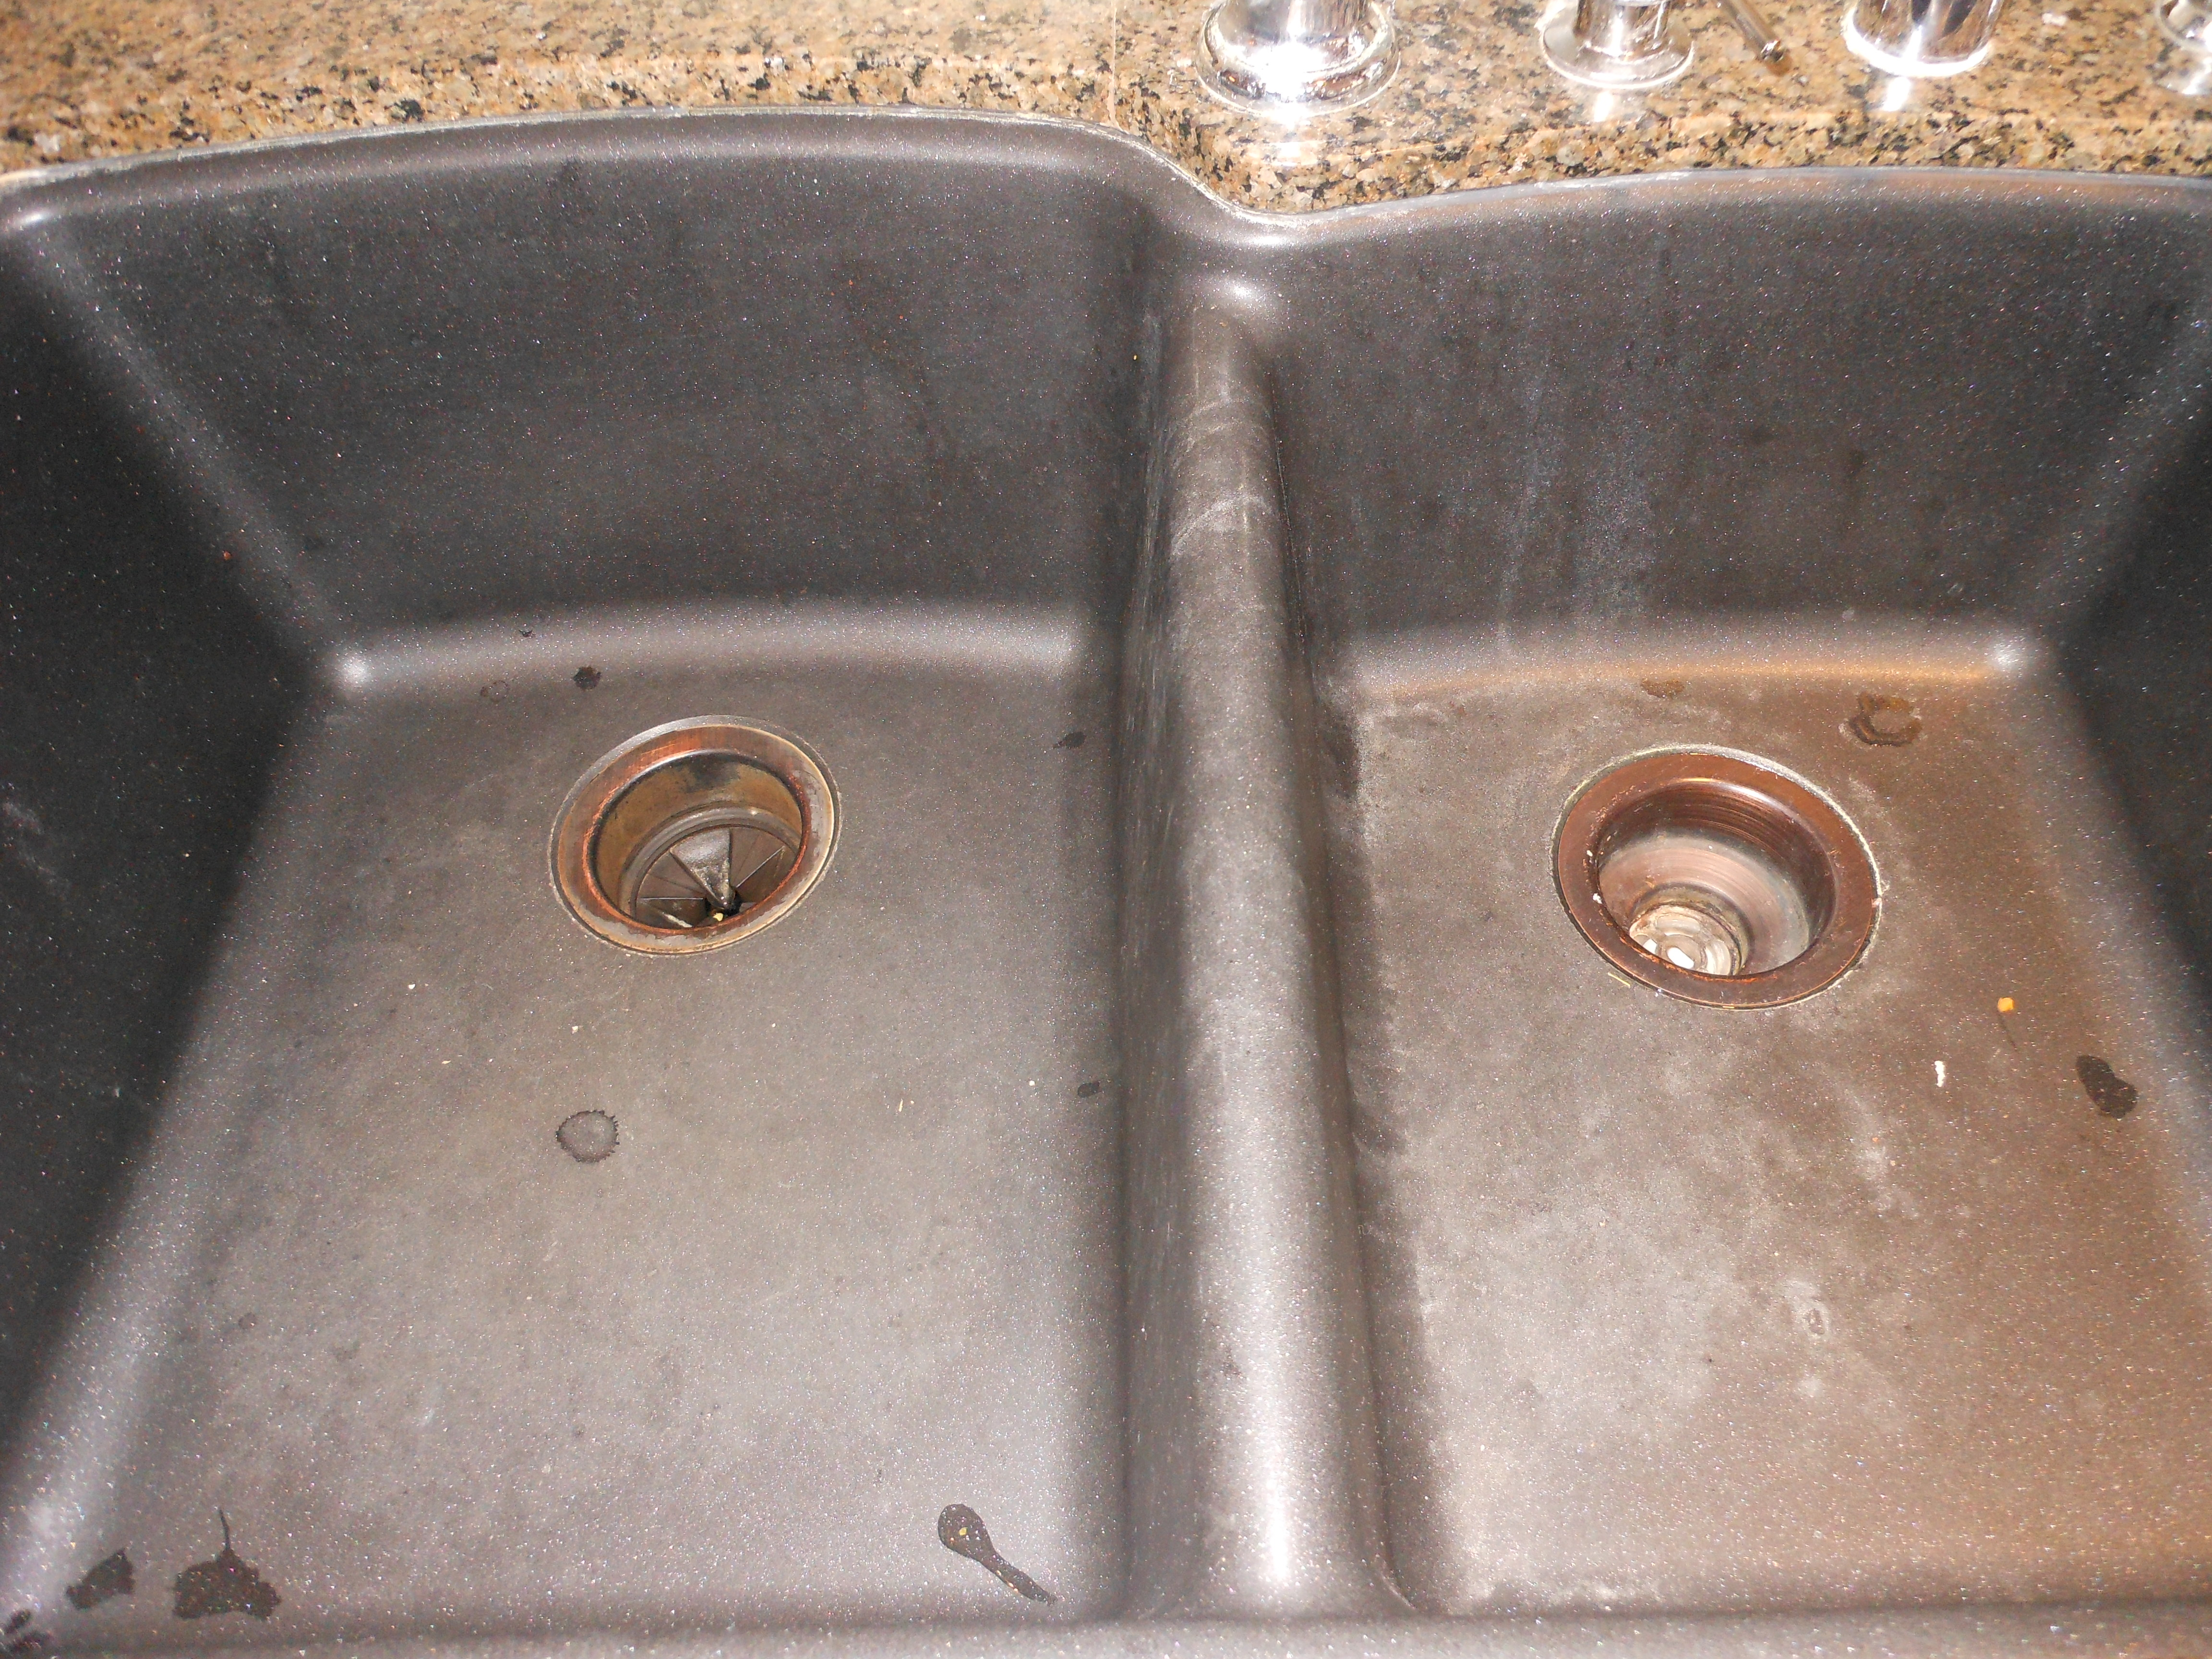 Charmant Black Granite Sink Cleaner Photo   2